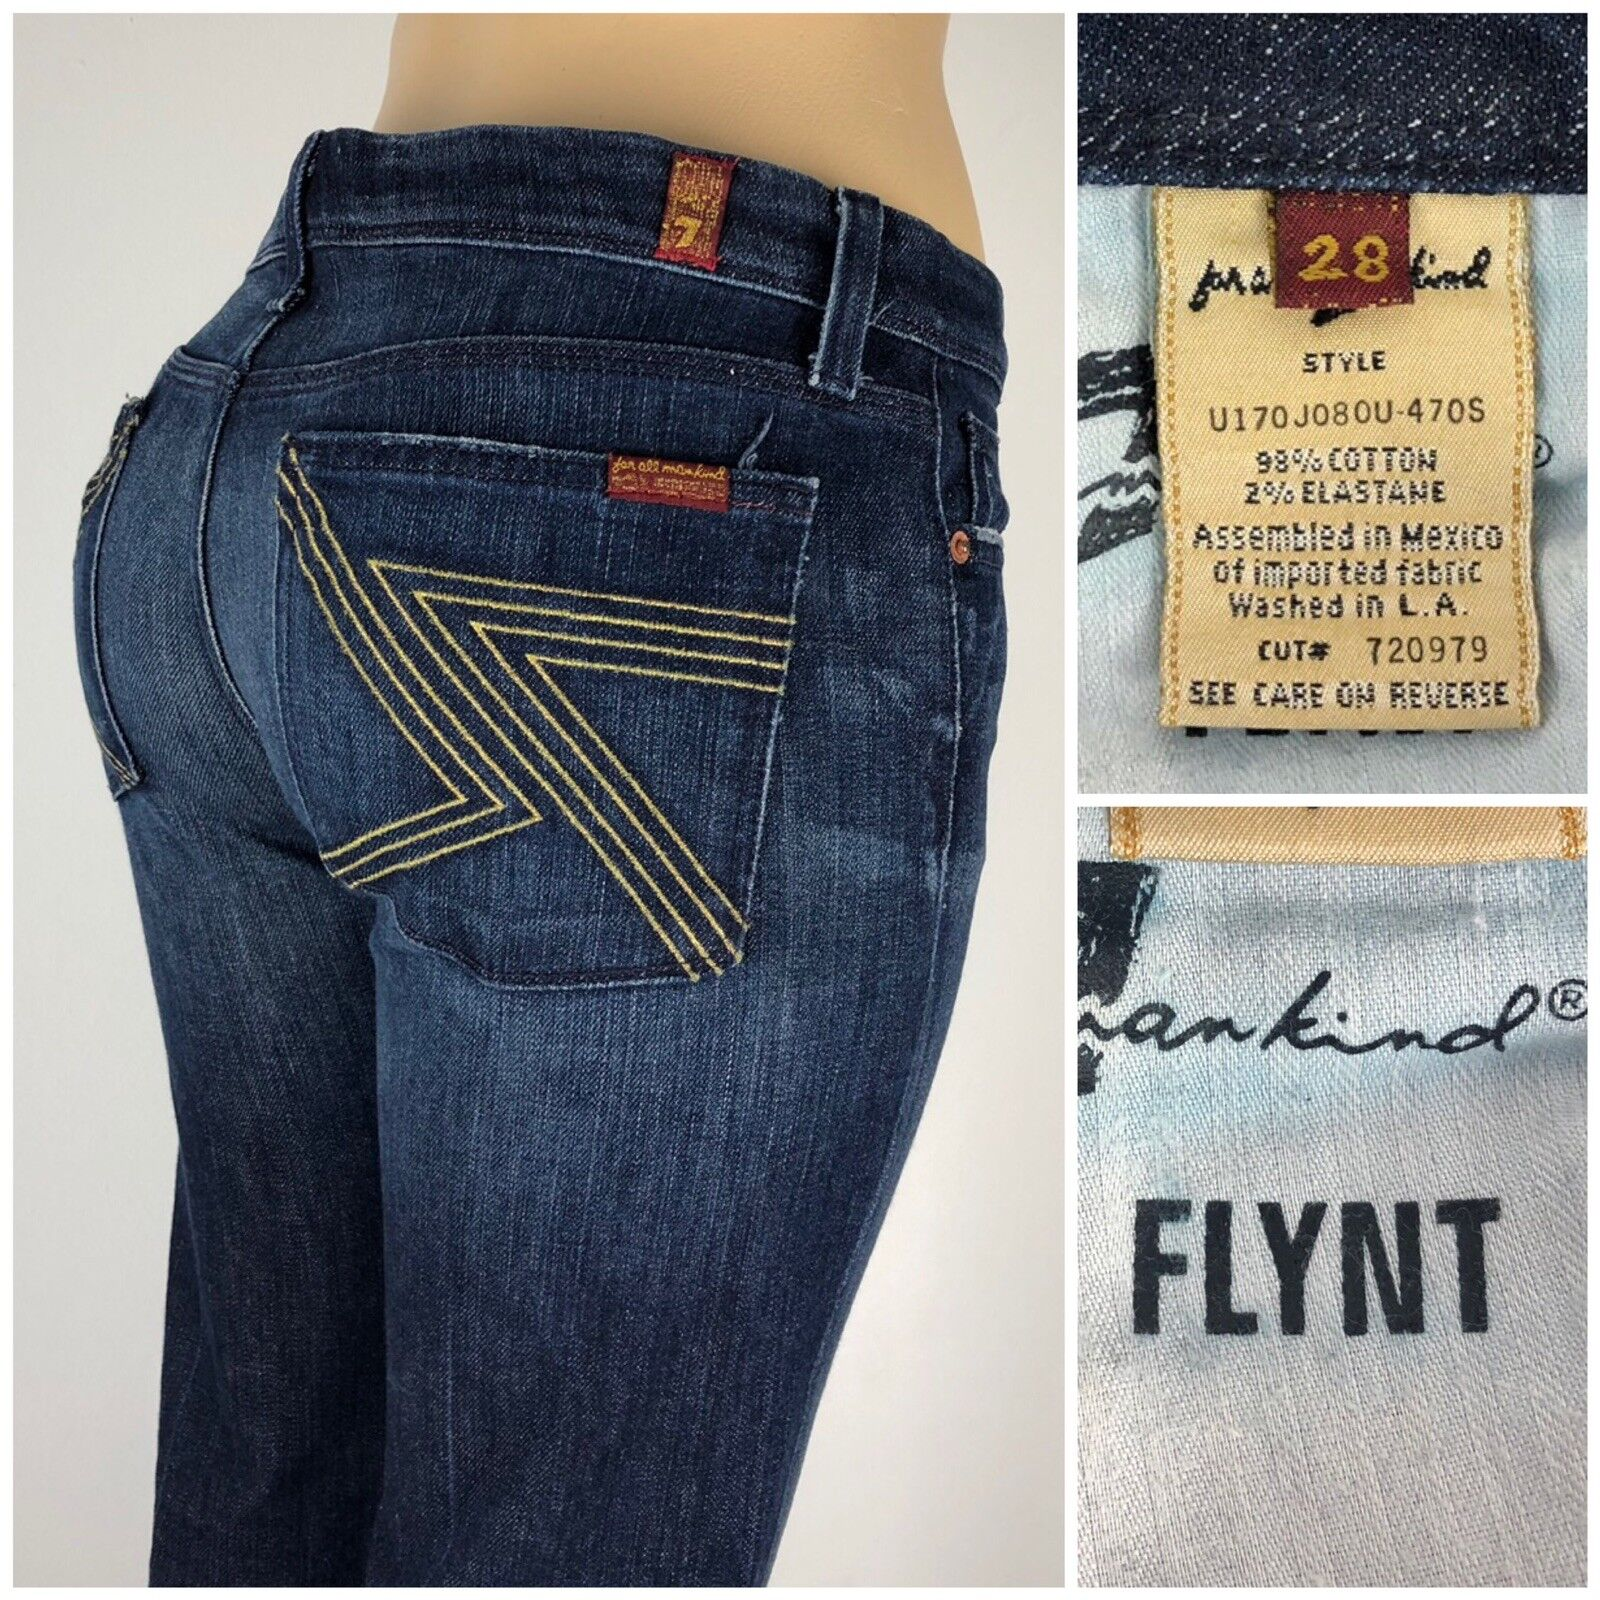 2a6608d43e9 For Mankind Womens 28 X 32 Jeans Flynt Embroidered Cut 720979 Distressed 7  All qcddhj803-Jeans